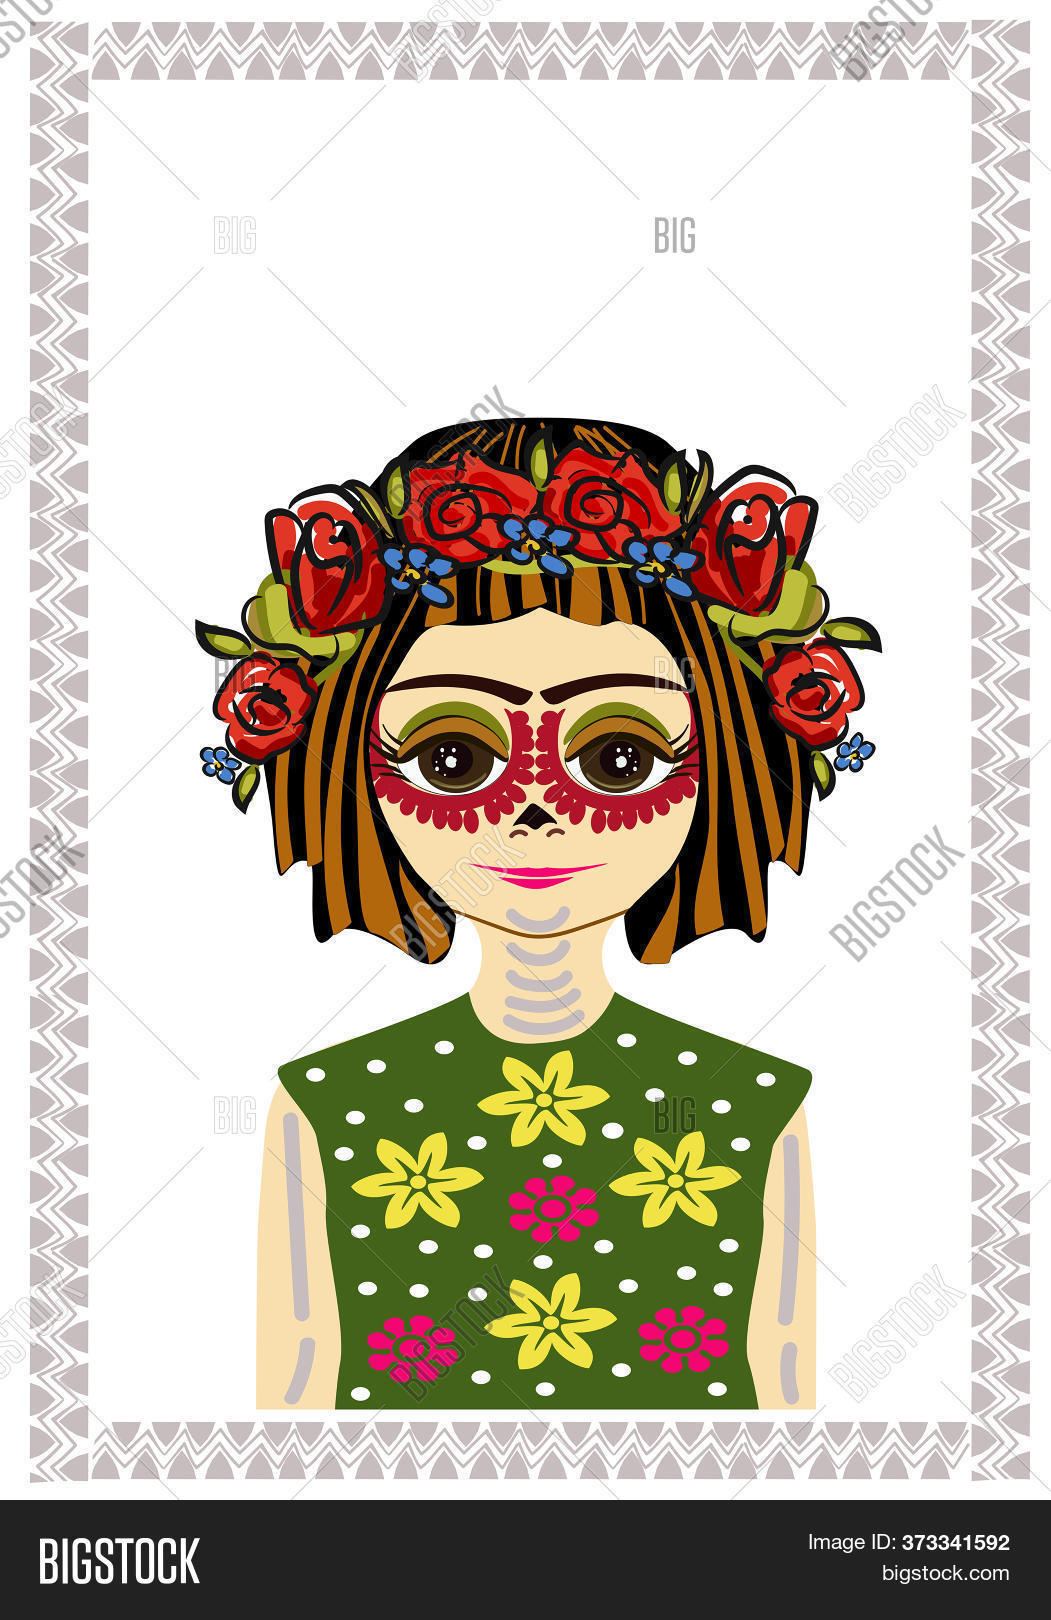 Young Mexican Girl Image Photo Free Trial Bigstock